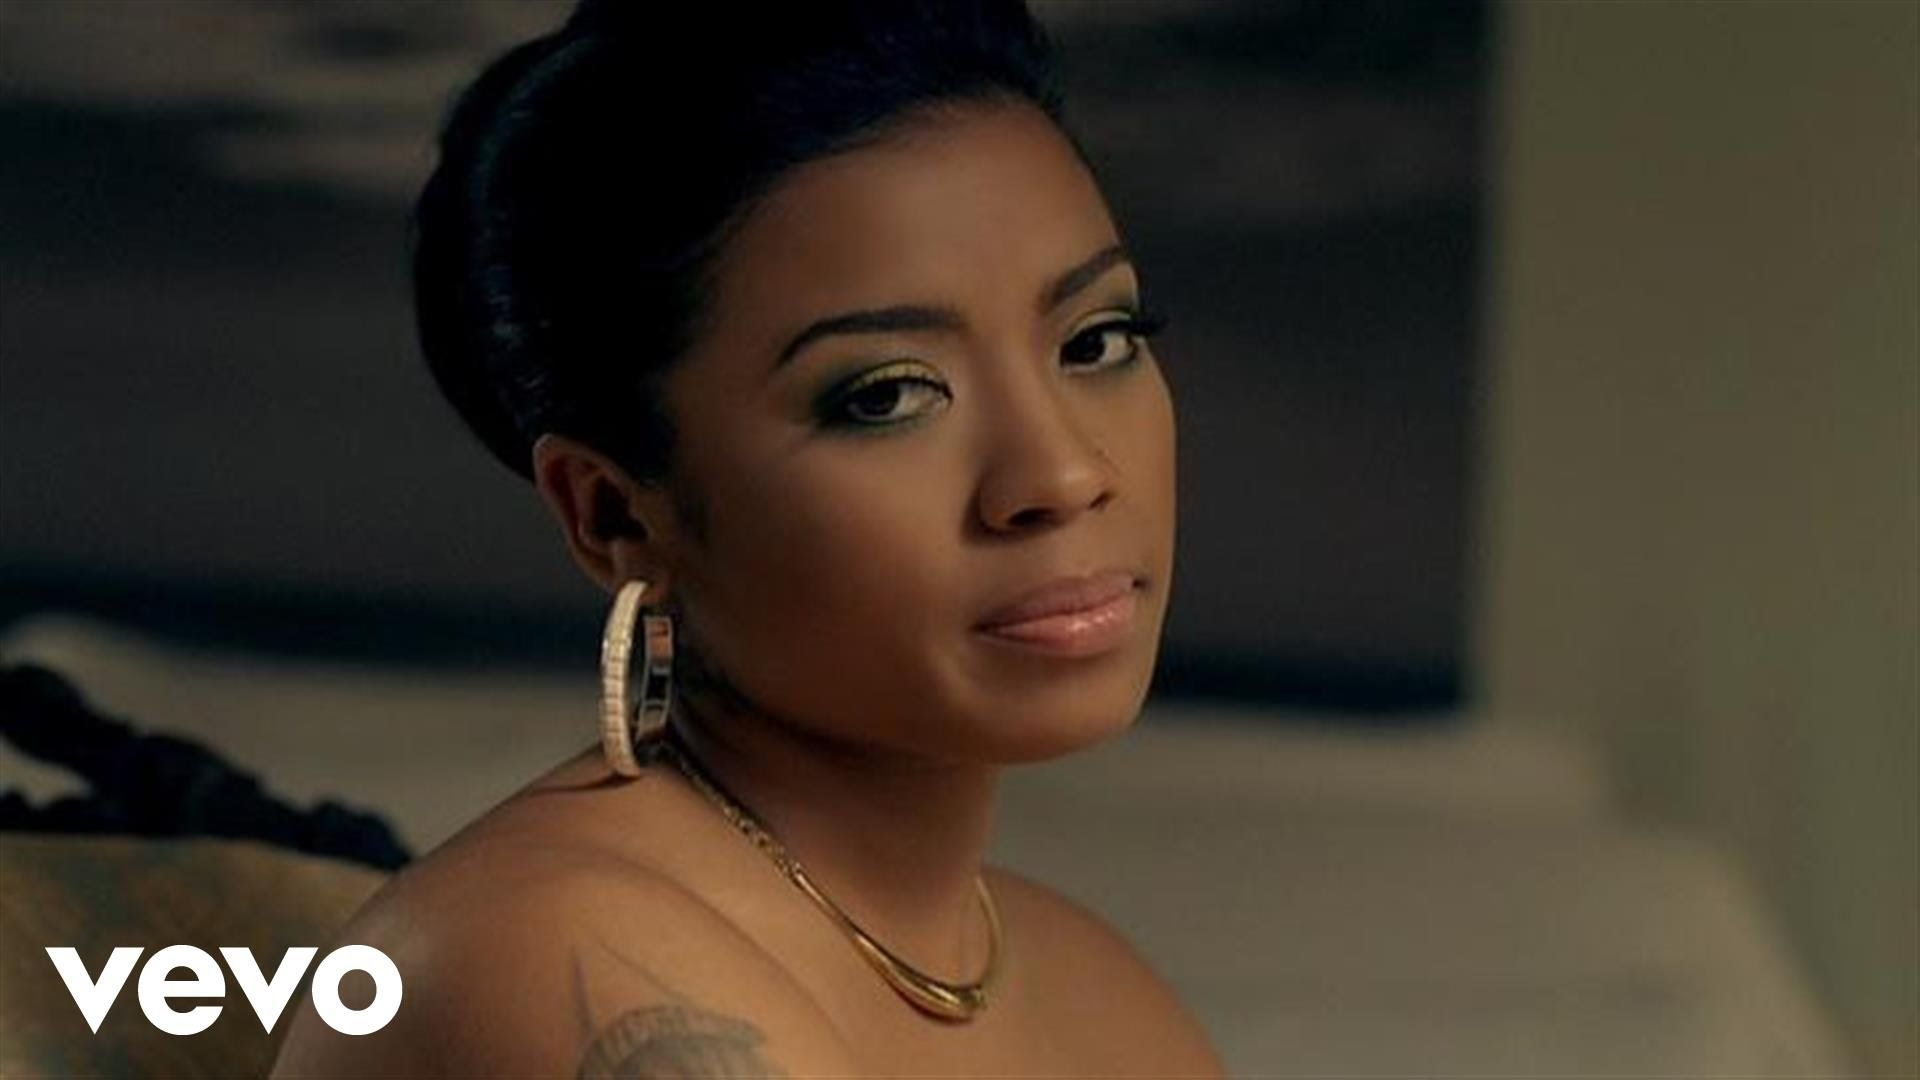 Youtube Keyshia Cole nudes (33 foto and video), Pussy, Hot, Twitter, lingerie 2019